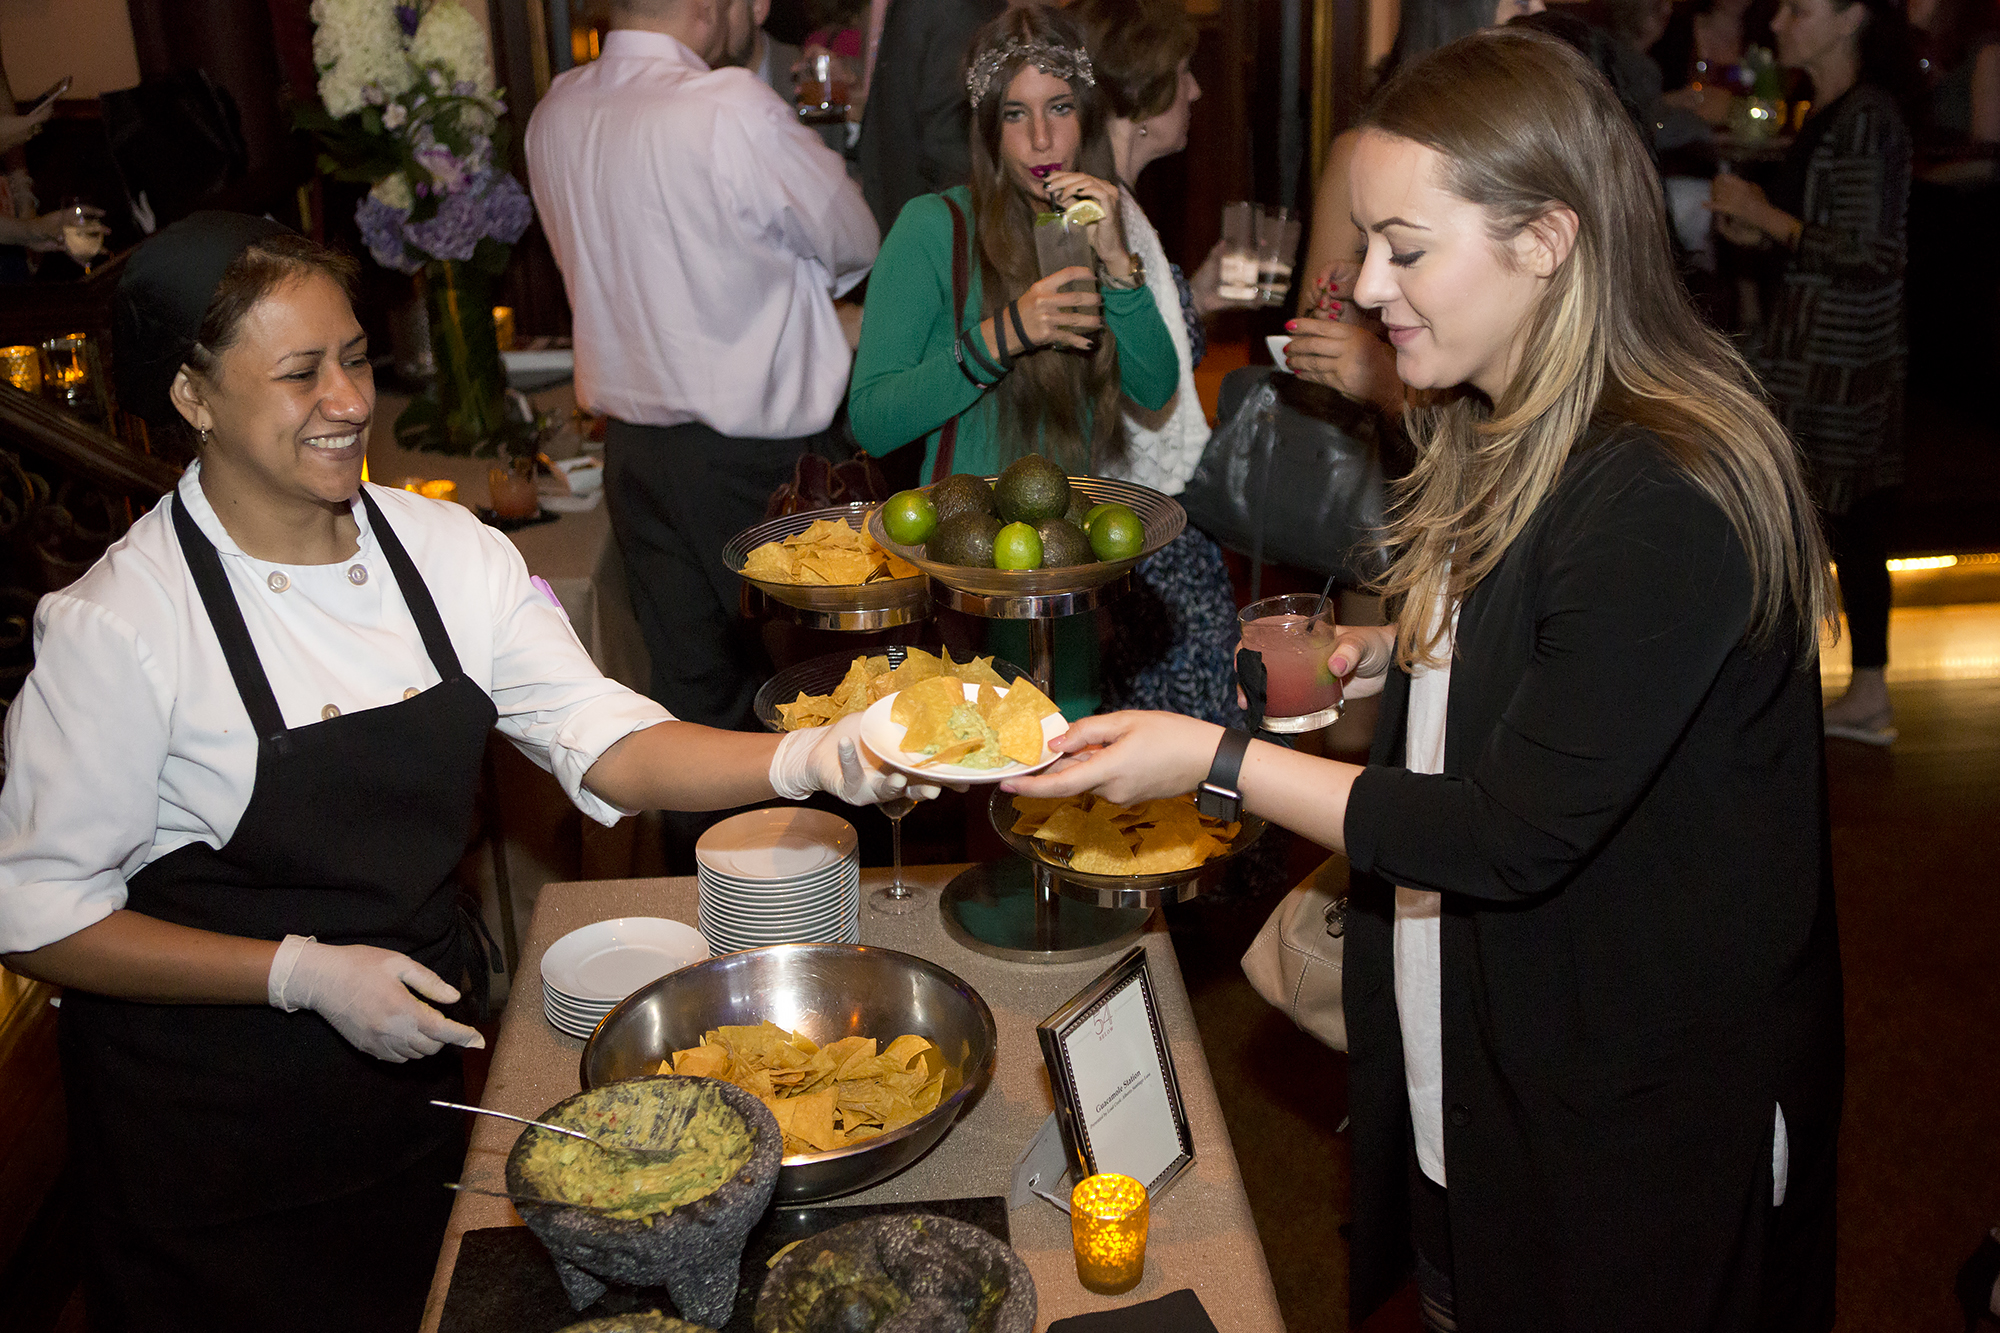 Attendants serving patrons at the homemade guacamole station